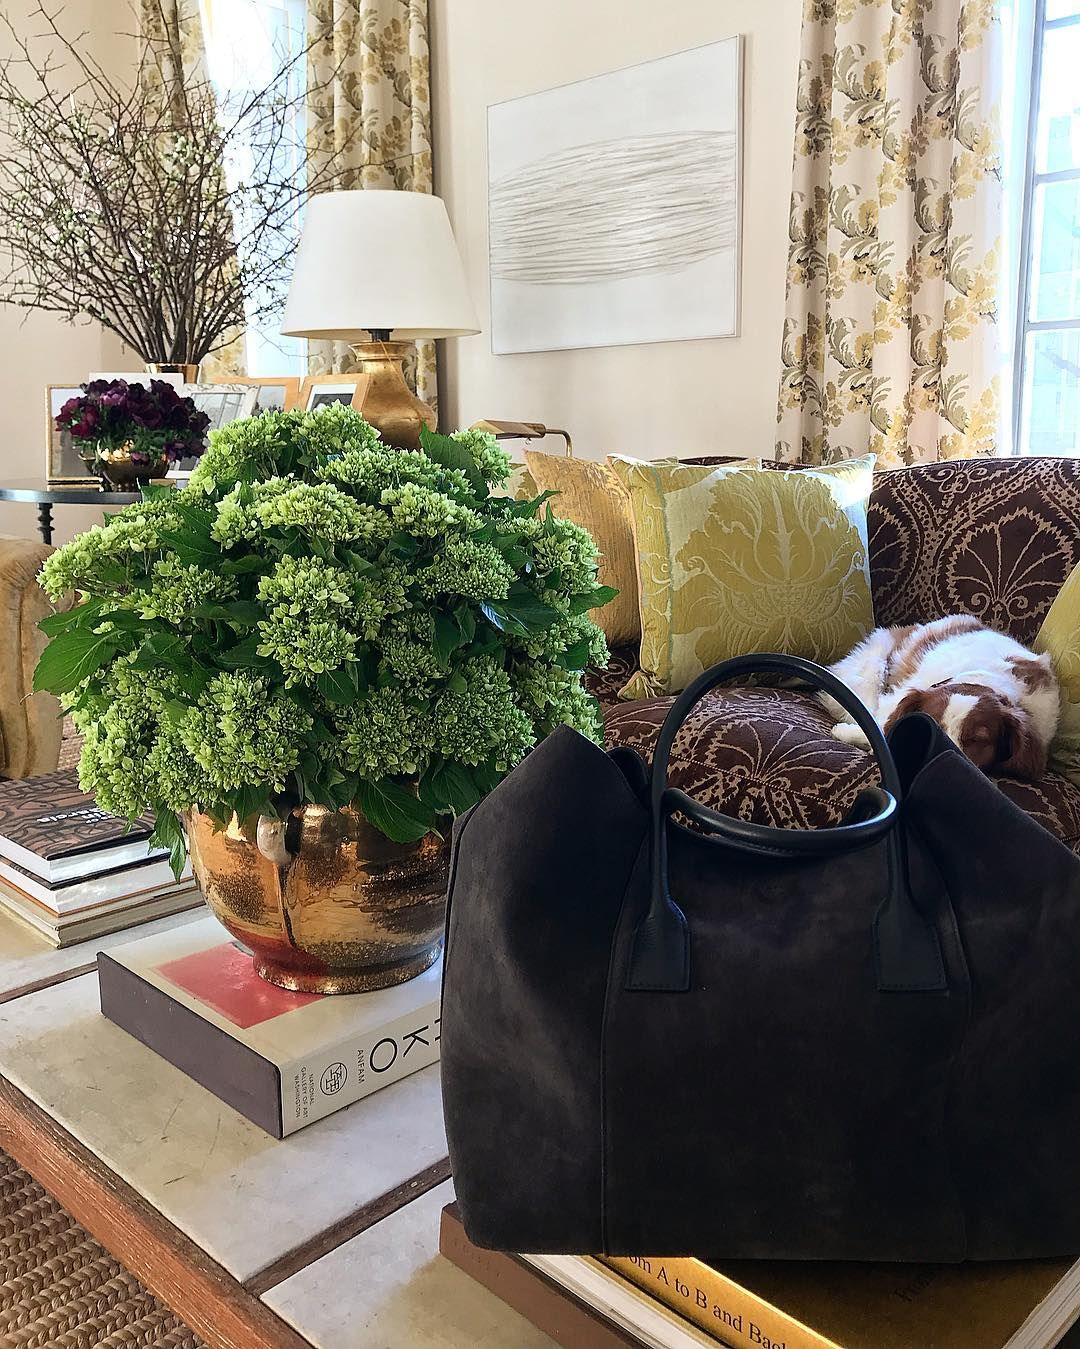 Aerin On Instagram Floralfriday At Home With Our Mini Weekender